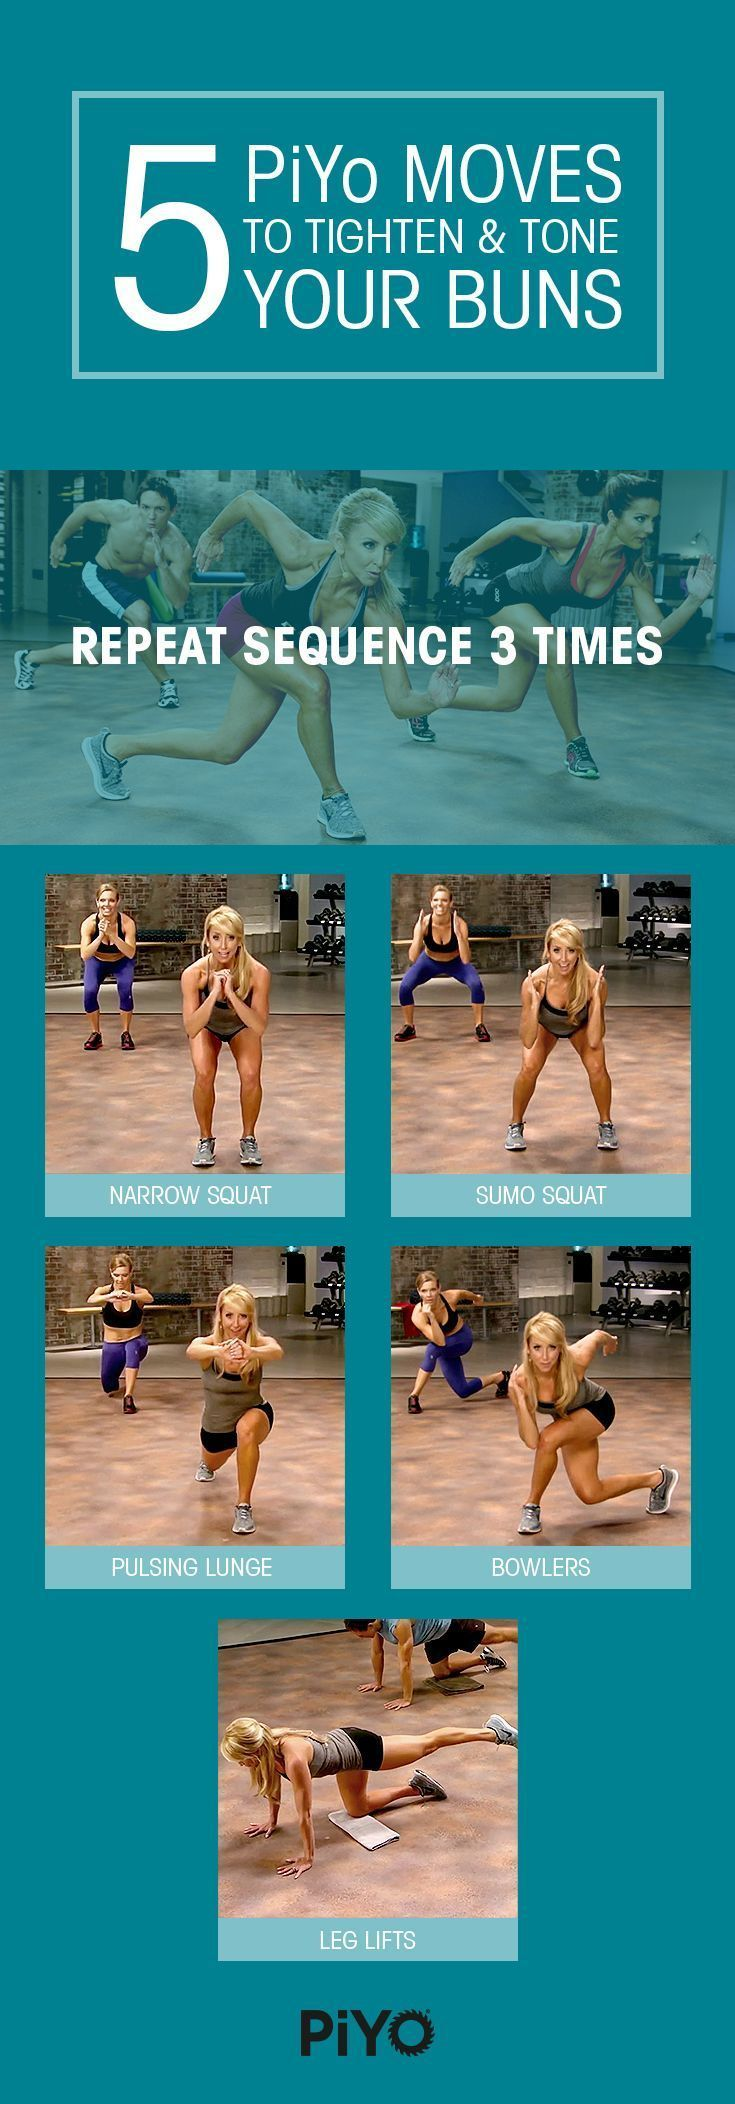 Tighten and tone your booty with these 5 moves from PiYo! They incorporate the best of Pilates and Yoga to help sculpt and strengthen your butt into everything you've ever wanted. Click through to learn how to do the moves properly! // fitness // workout // exercise // butt workouts // booty workouts // lower body workouts // piyo // chalene johnson // mini workouts // simple moves // beginner // Beachbody // http://BeachbodyBlog.com